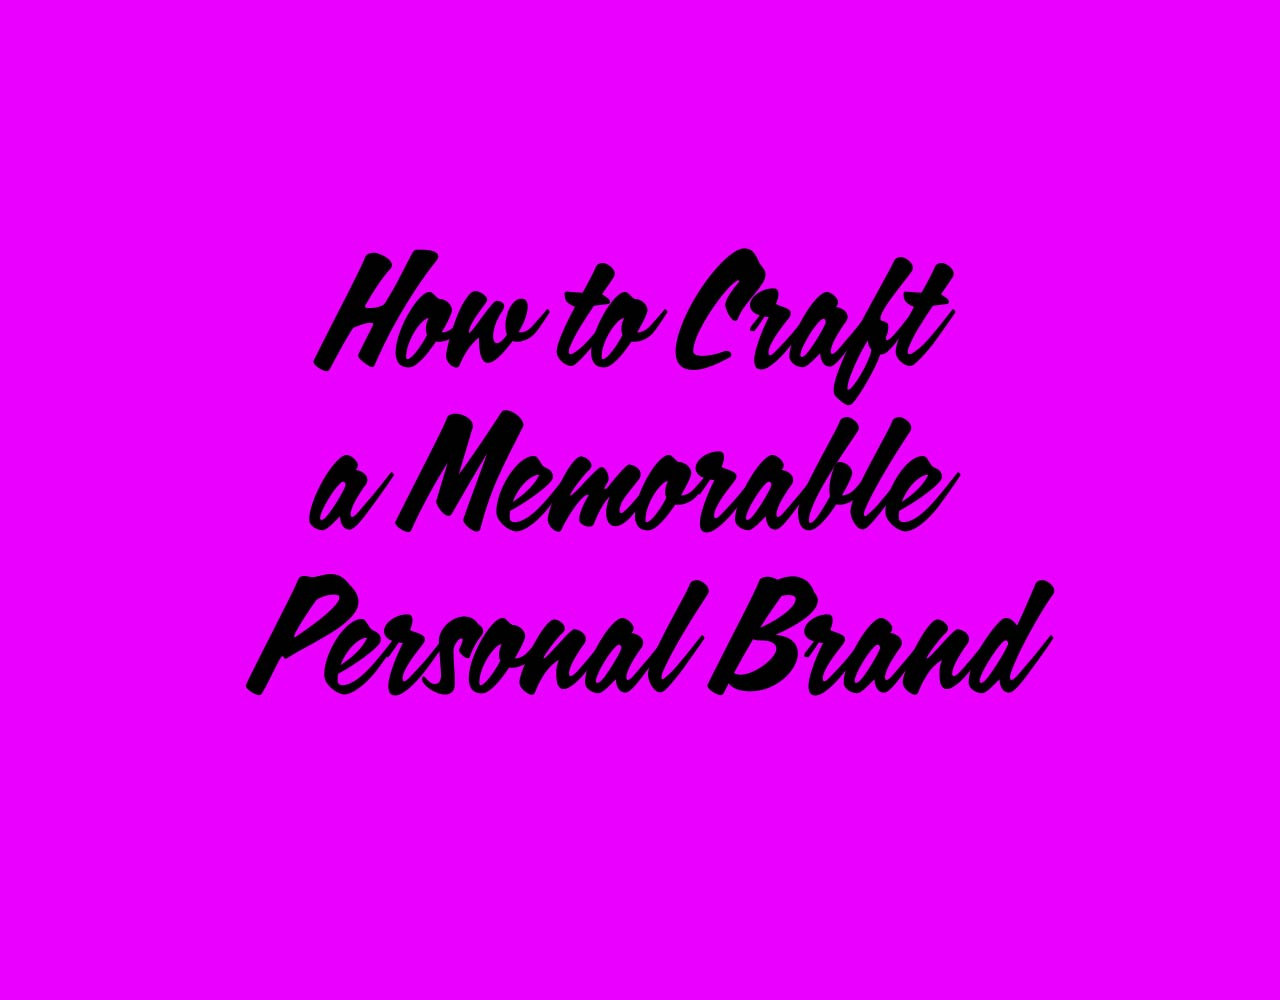 How to Craft a Memorable Personal Brand